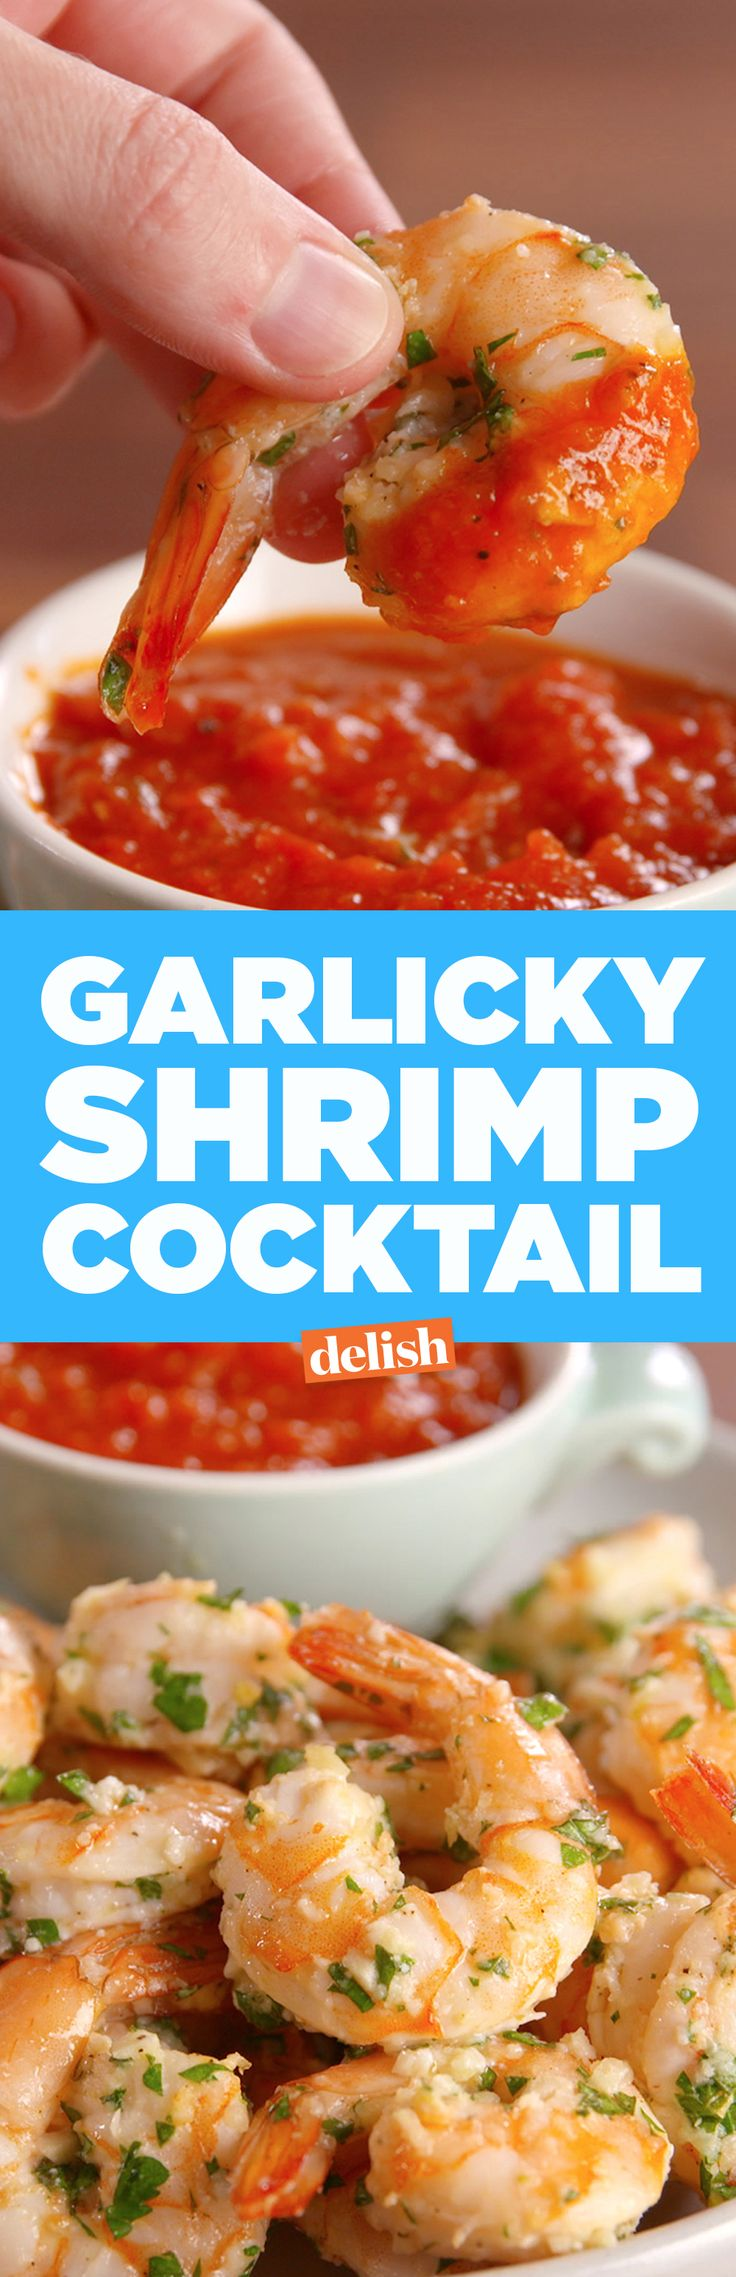 This Garlicky Shrimp Cocktail is all people will talk about at your holiday party. Get the recipe on Delish.com.